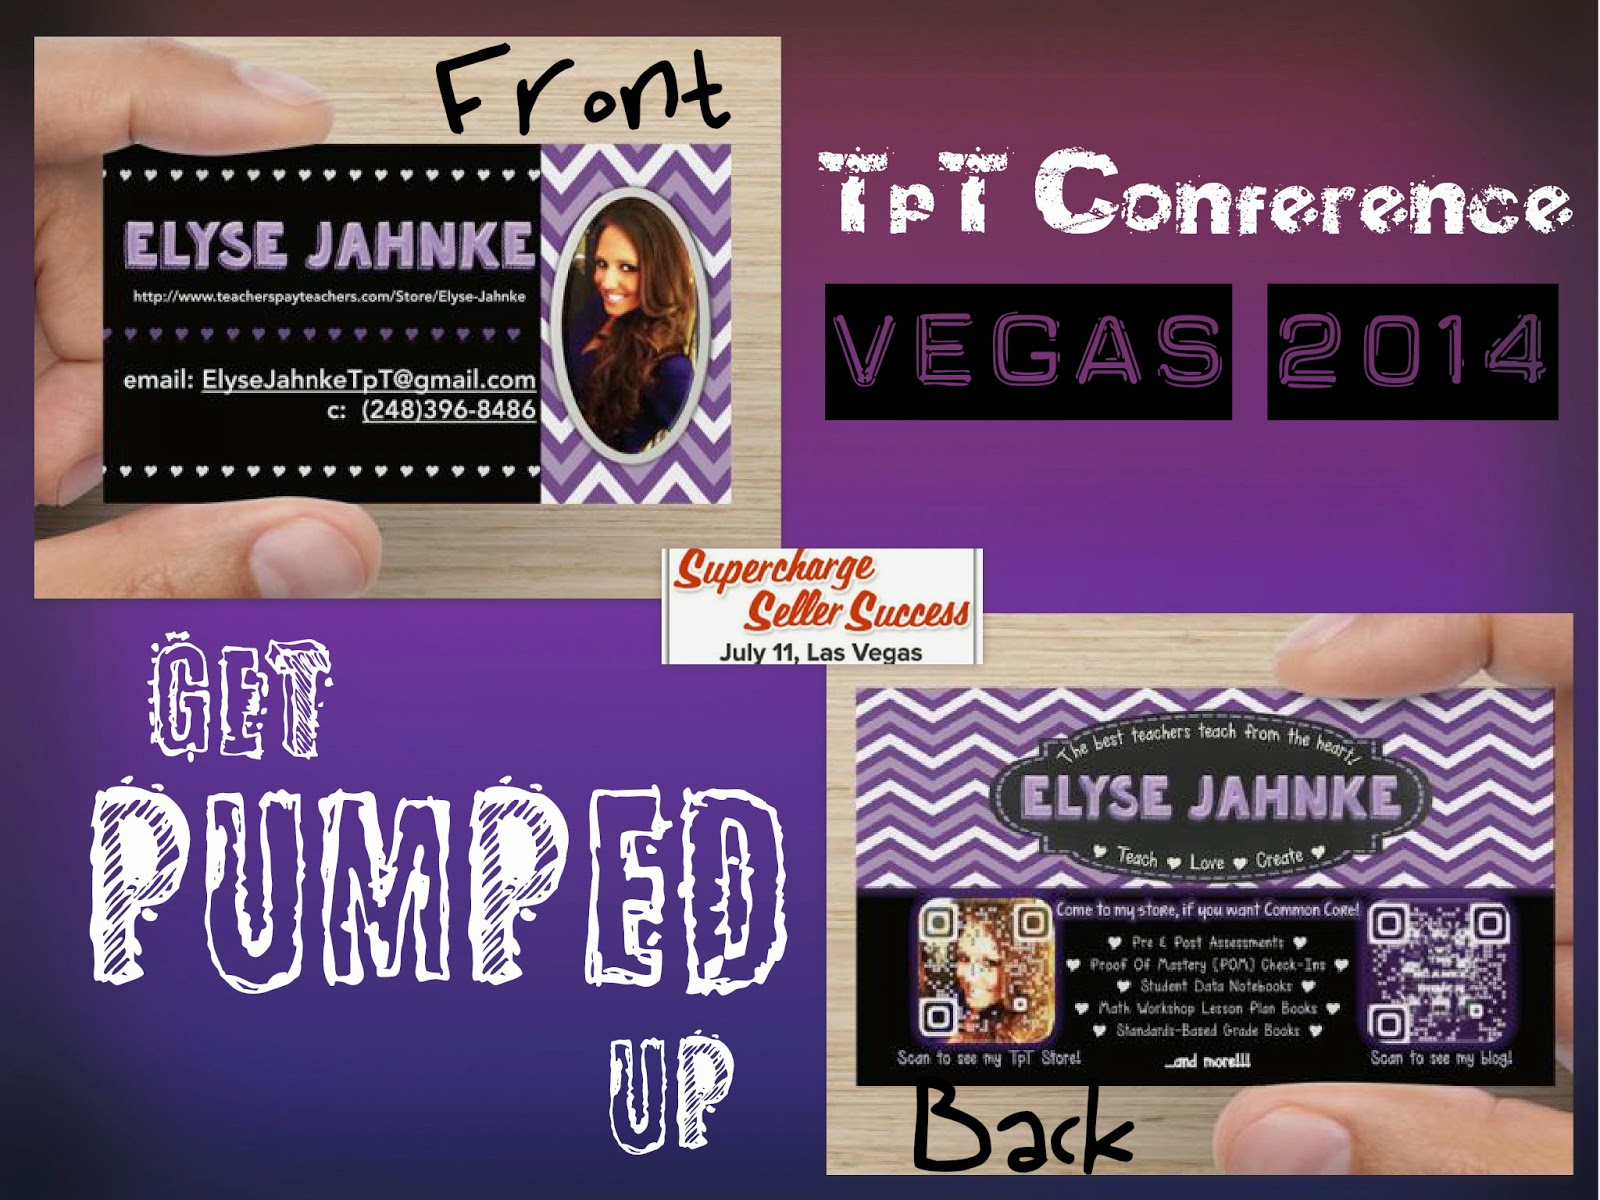 Teaching with heart and soul tpt conference vegas 2014 from following tpt teachers on instagram was the idea of making business cards i just made these on vistaprint i designed them on powerpoint reheart Image collections